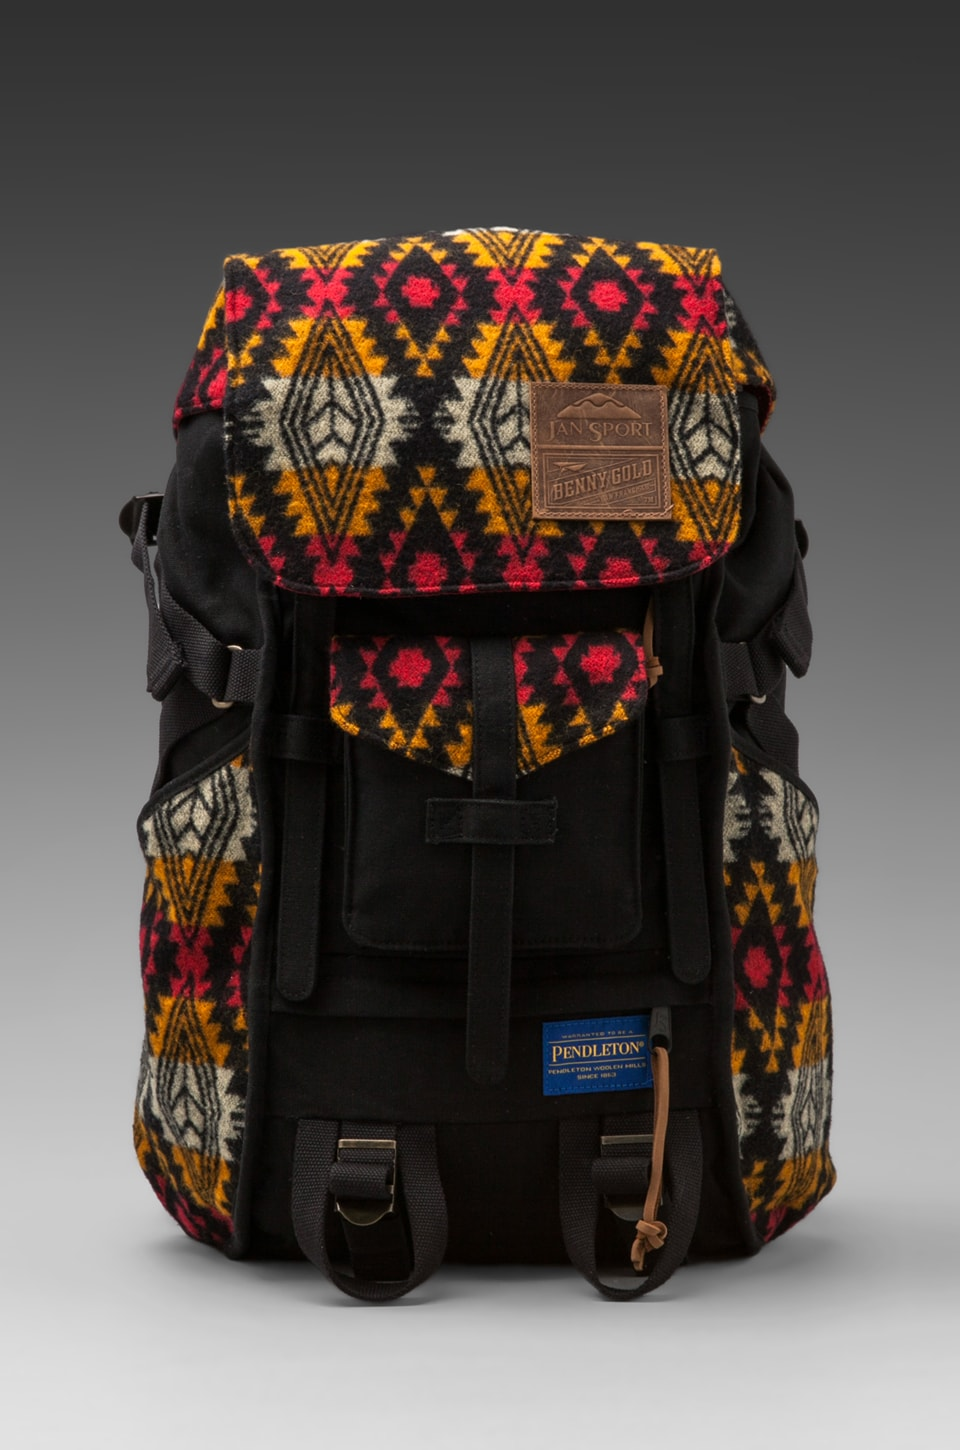 Jansport x Pendleton Oswego Backpack en Imprimé